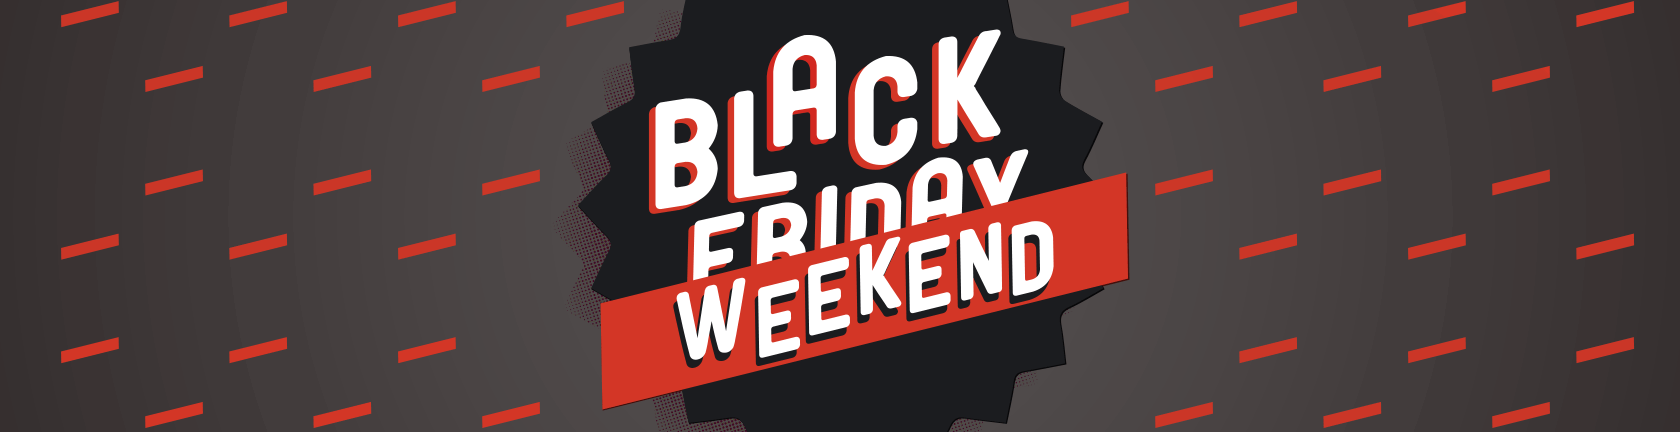 Vanden Borre Black Friday weekend